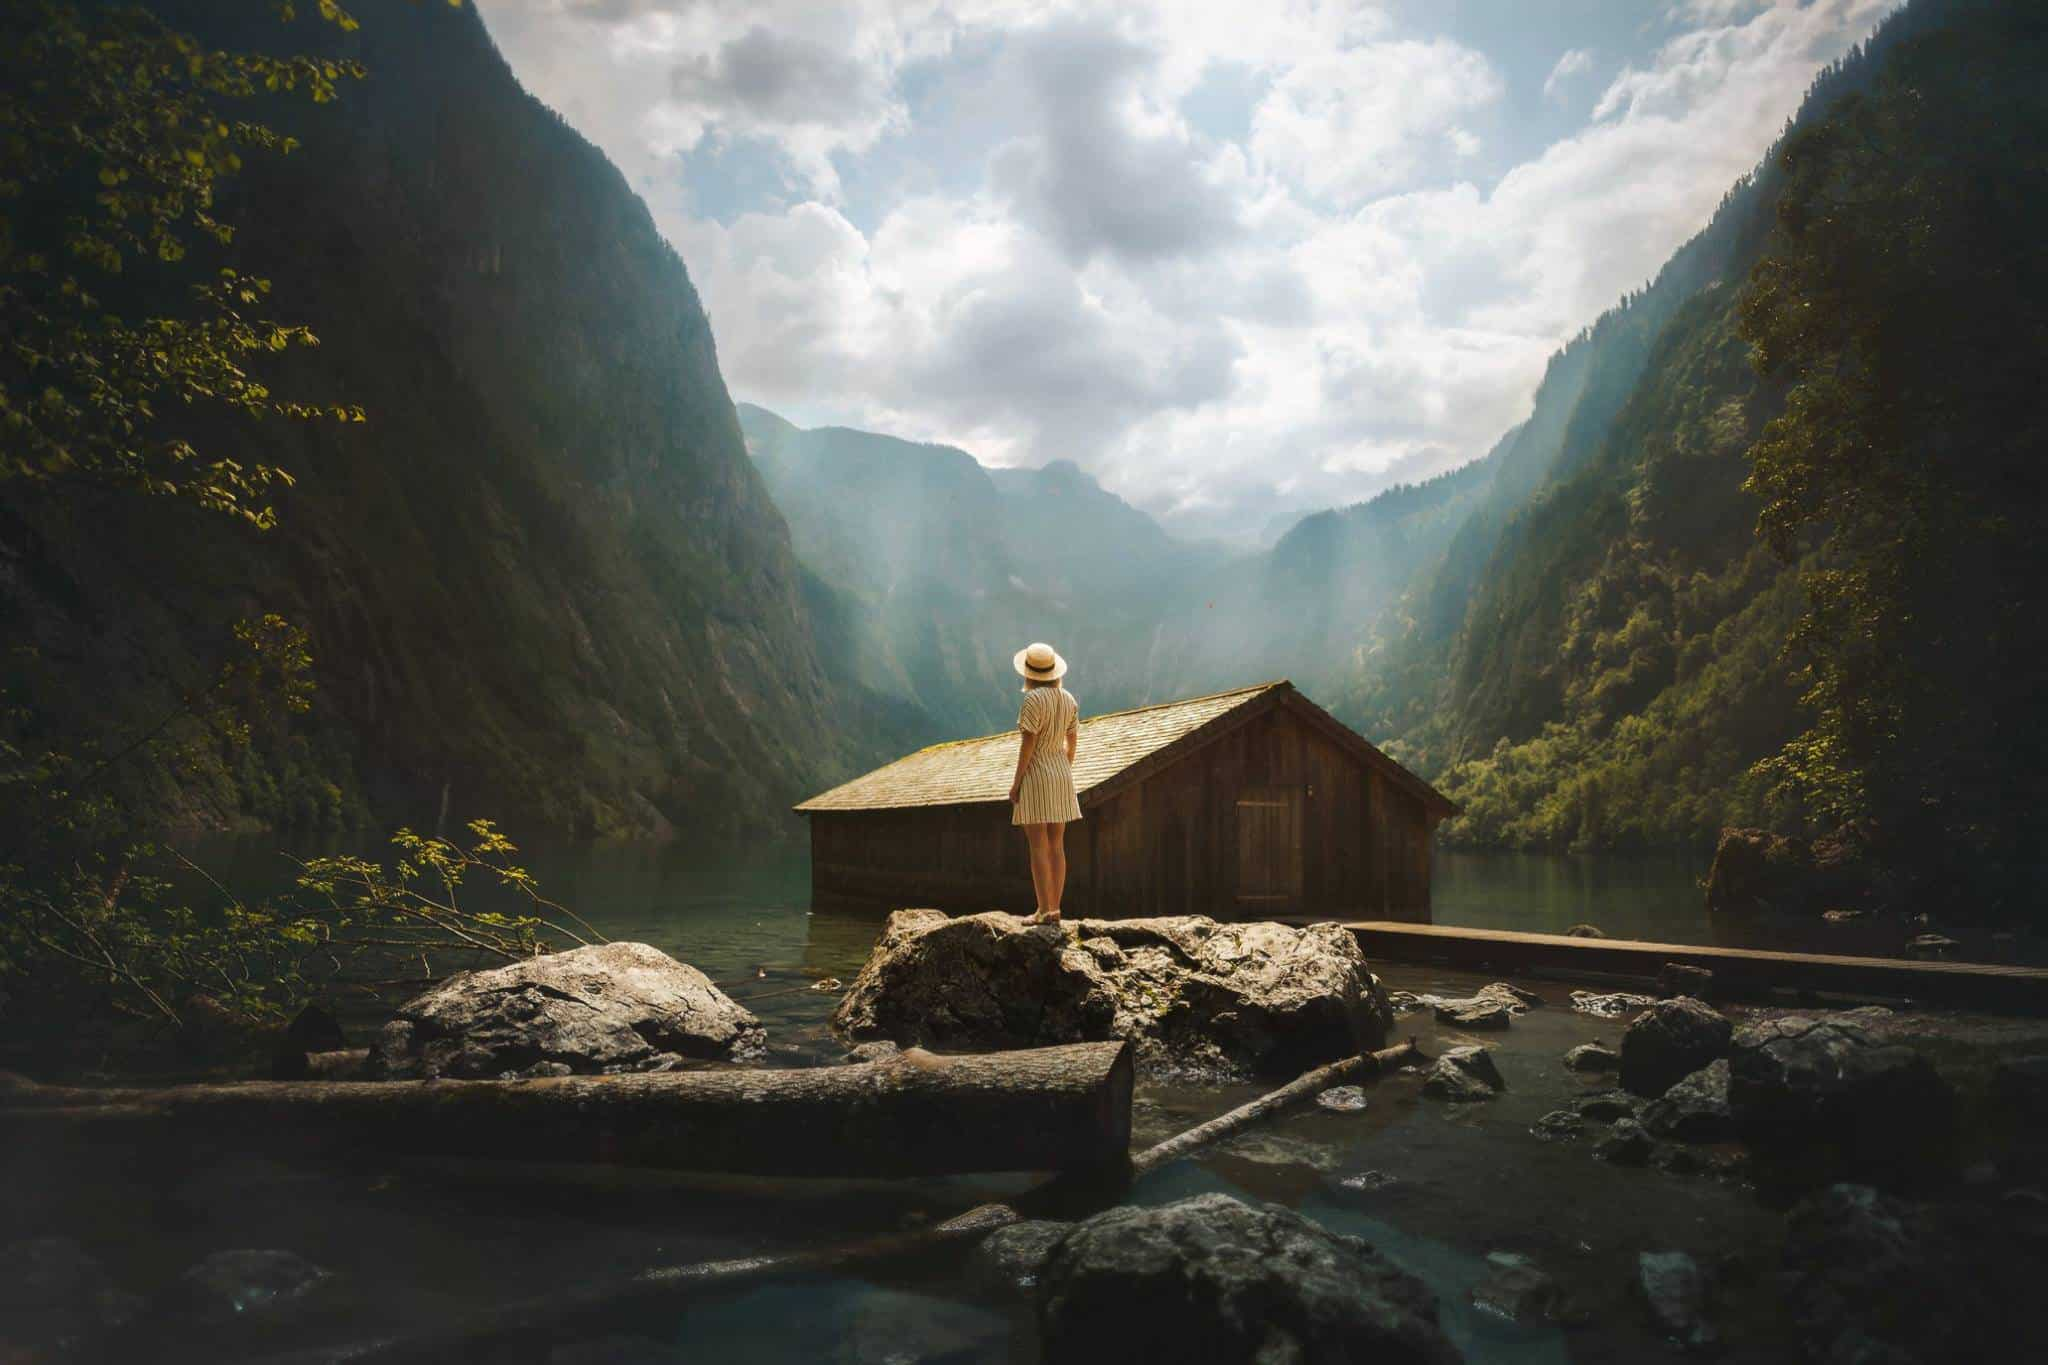 A person is standing on a rock in the middle of a lake and looks at a cabin surrounded by mountains